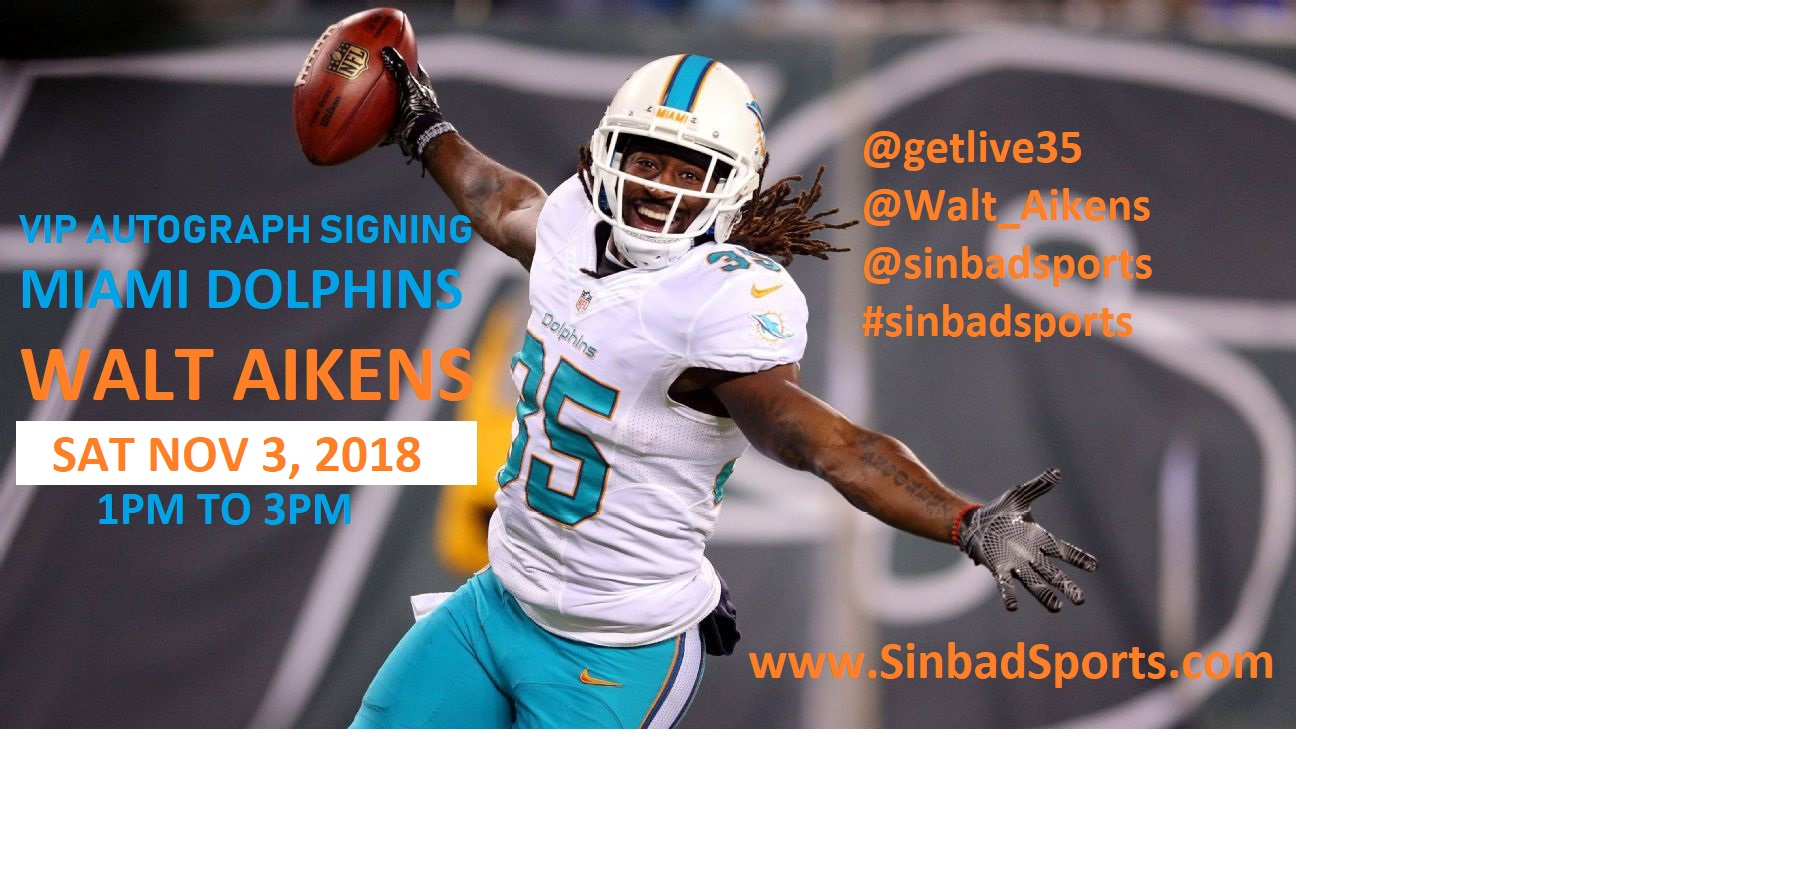 walt-aikens-photo.jpg